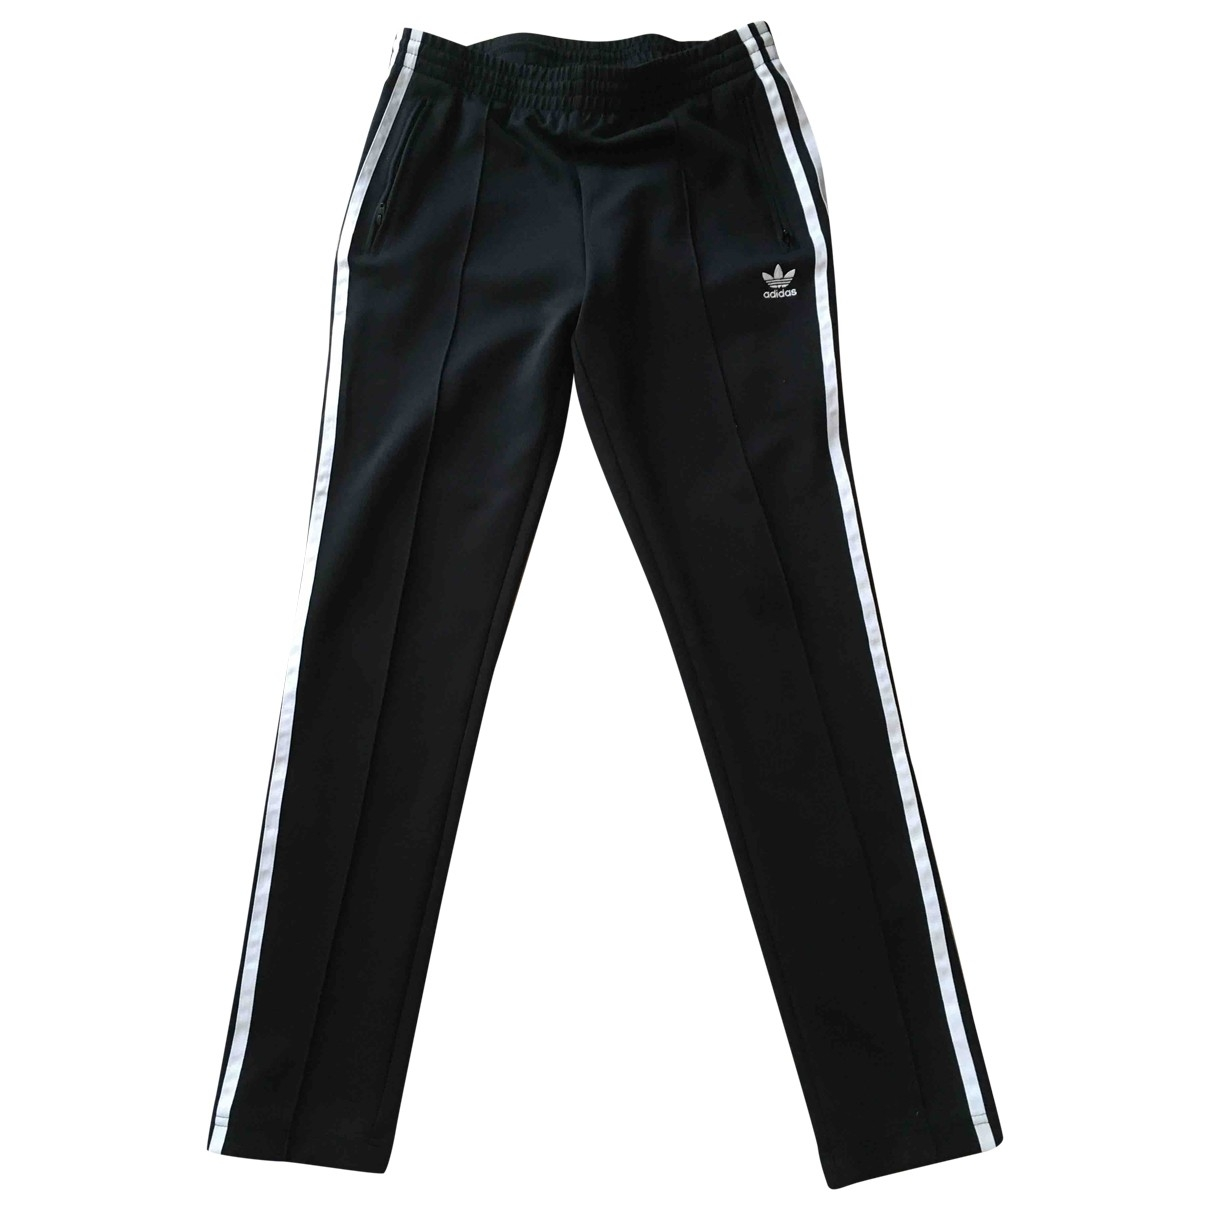 Adidas \N Black Trousers for Women 10 UK